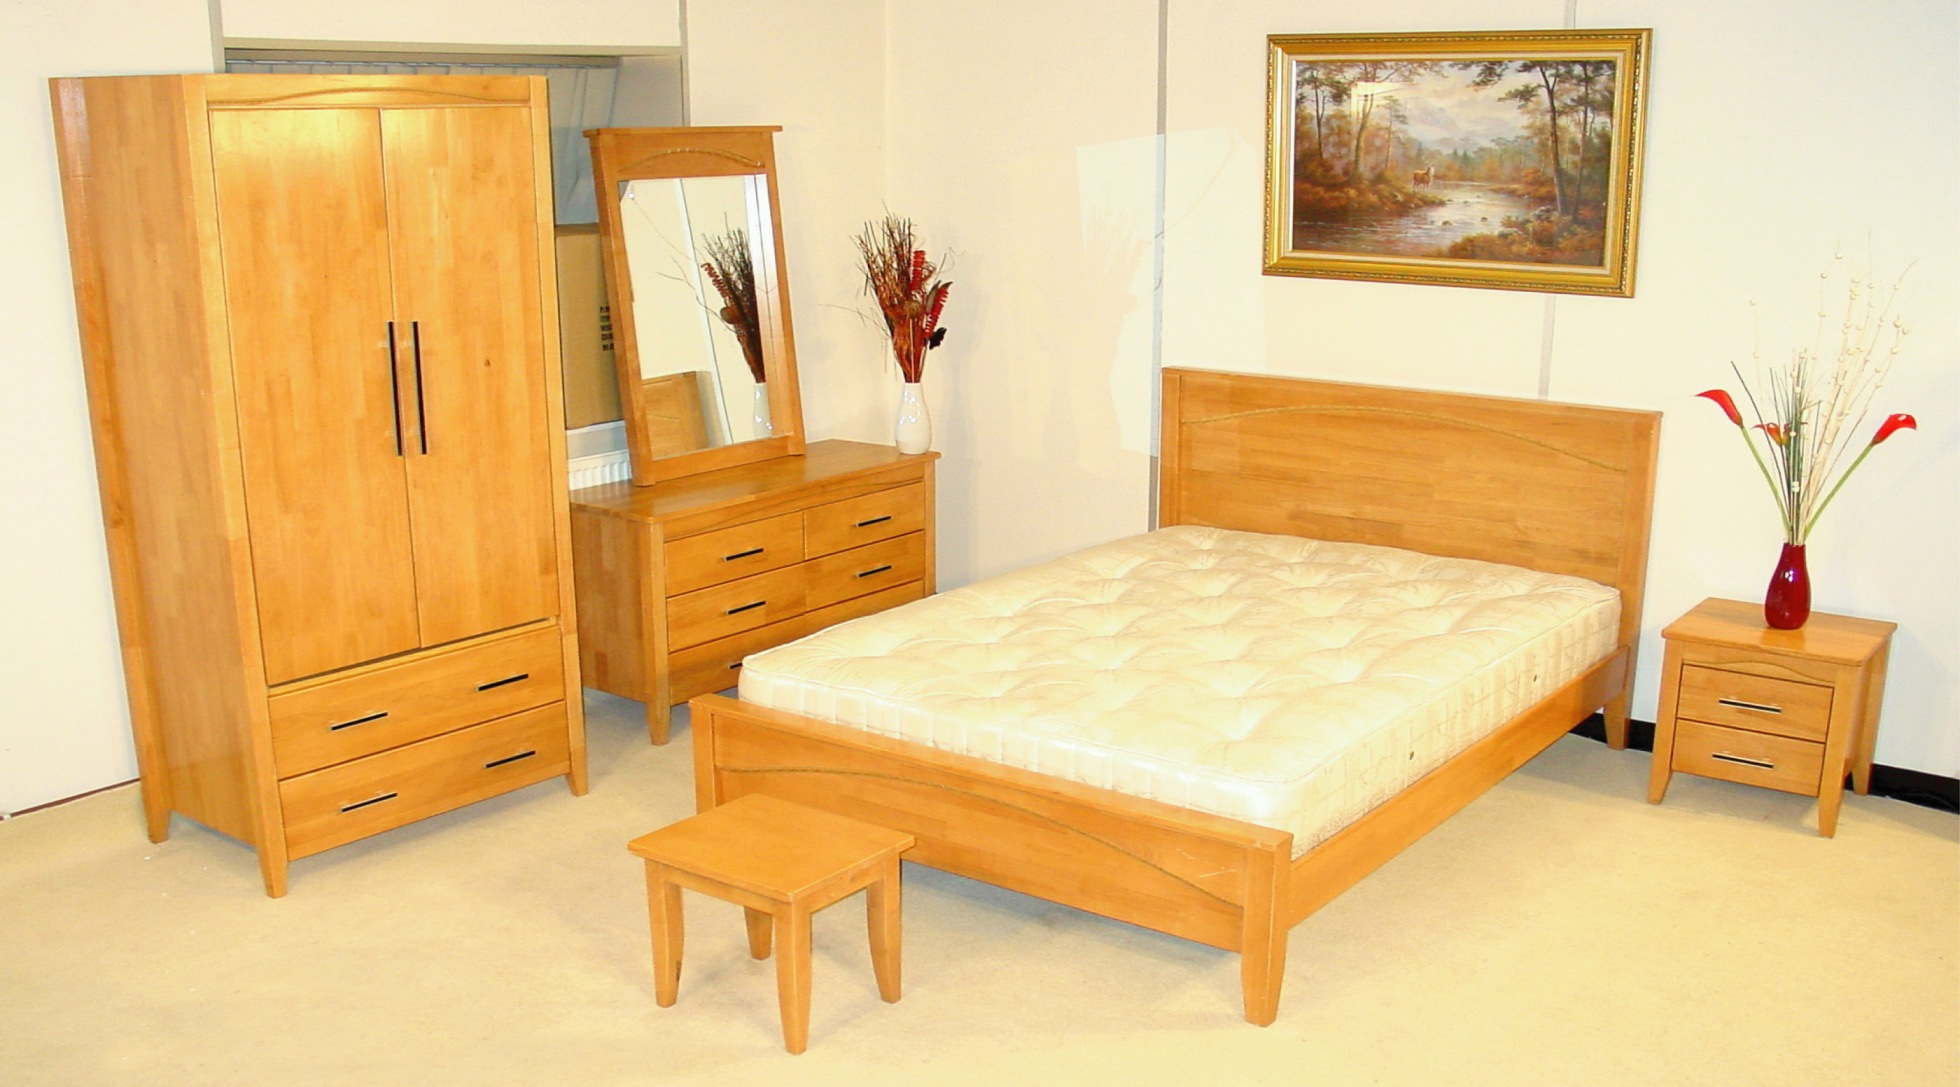 Inspirational Pine Bedroom Furniture Arouse Rustic And Natural View: Simple Pine Bedroom Furniture Leaning Mirror Single Bed